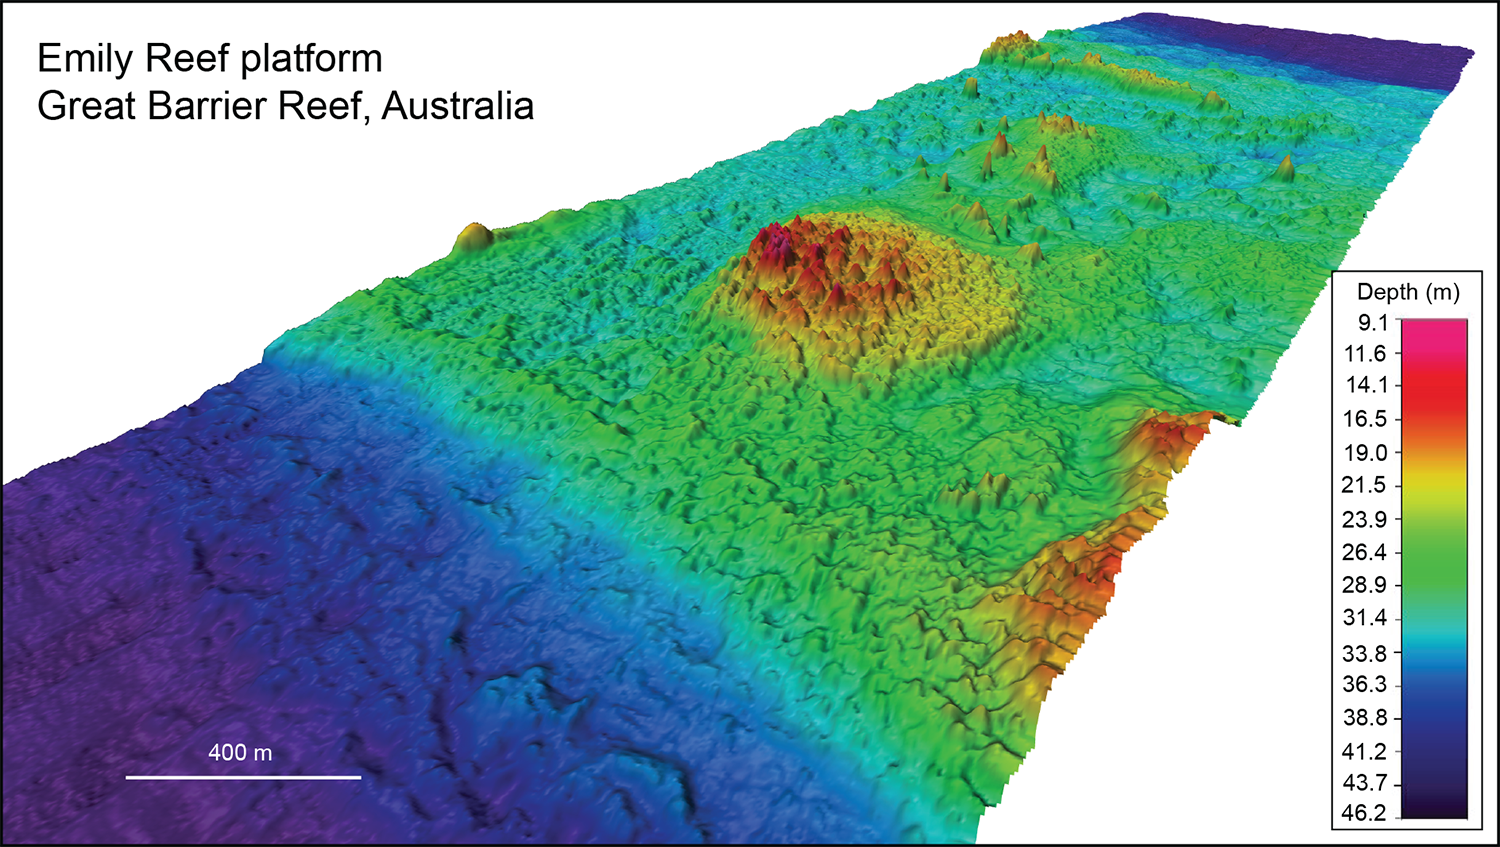 An example of a multibeam swathe mapping survey over Emily Reef, a broad coral reef platform on the northern Great Barrier Reef, Australia. Grid pixel resolution is 5 m. Total grid distance is about 8 km